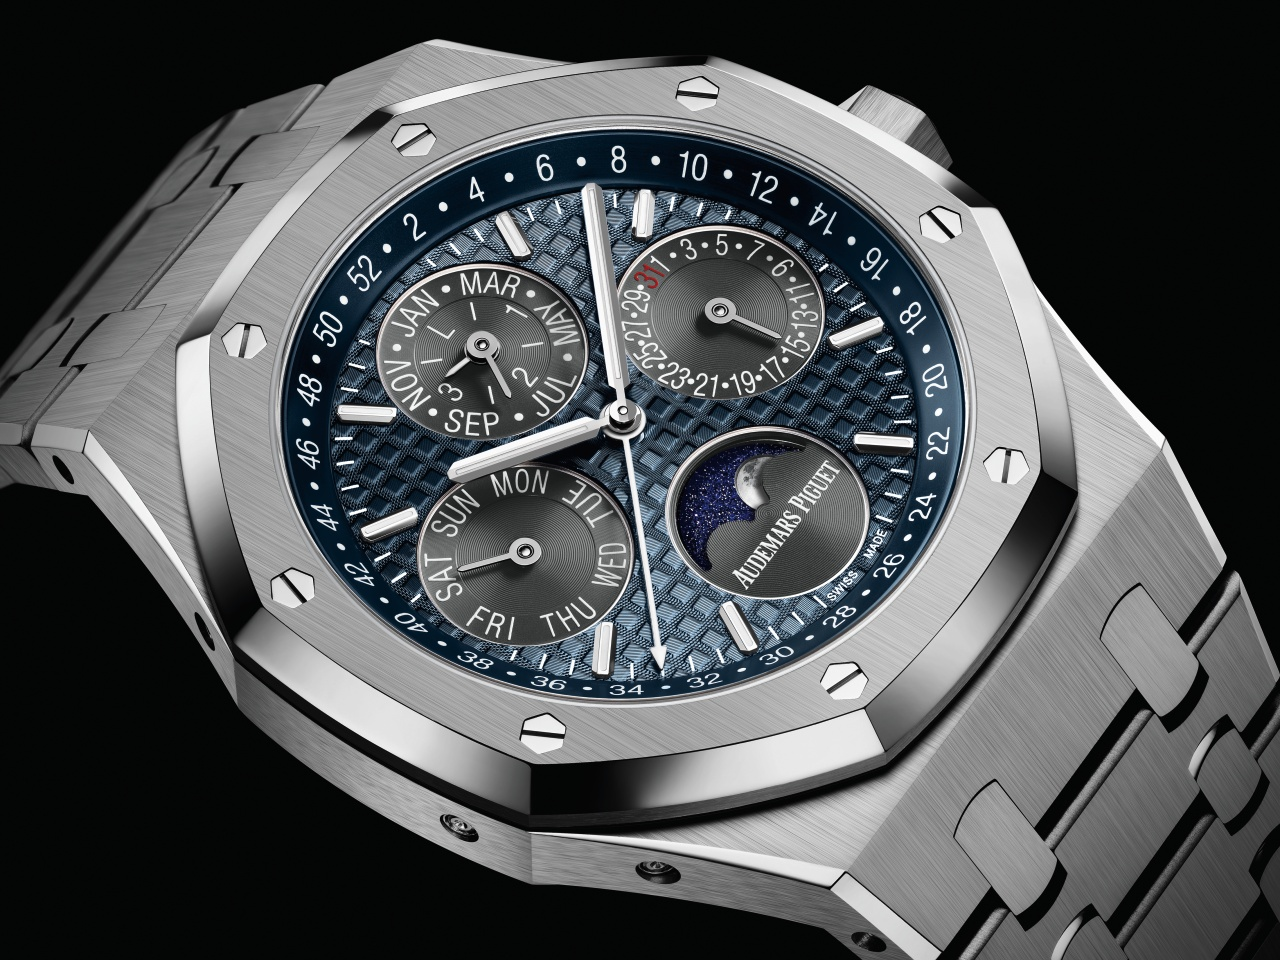 You Can't Ask That: The crazy (new) demand for complicated AP watches